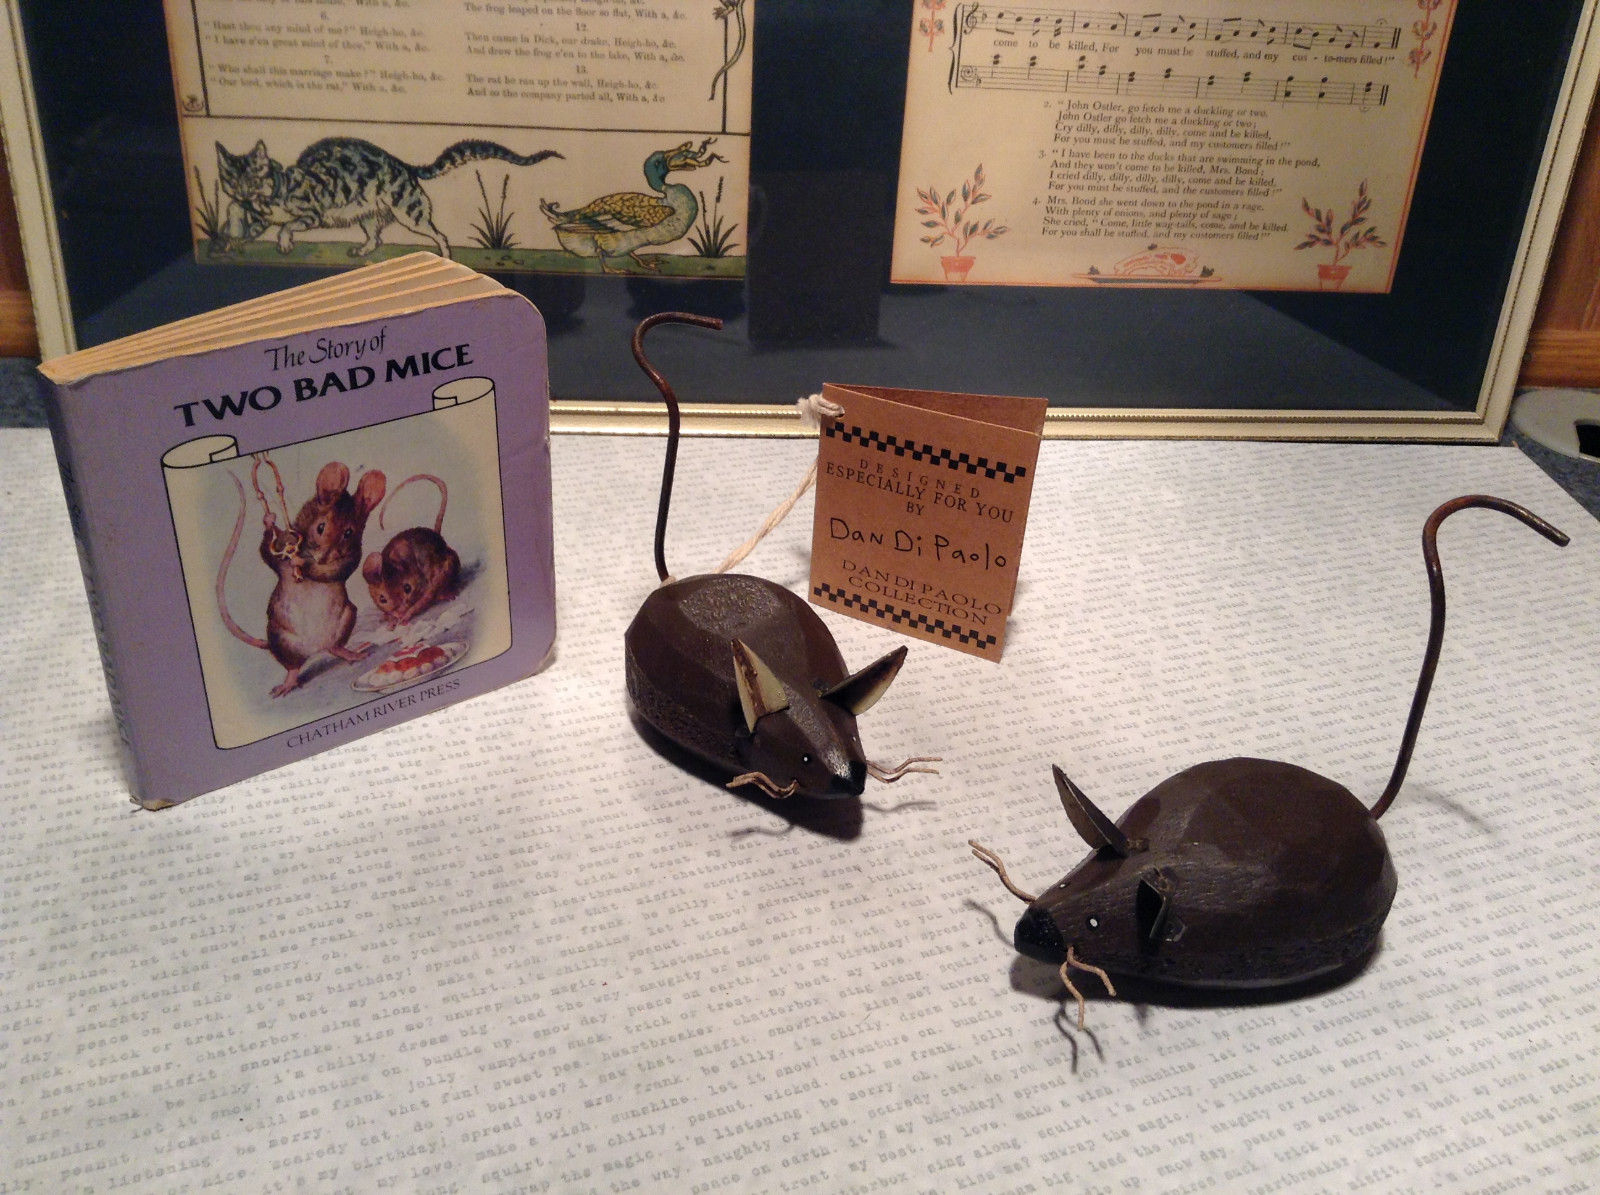 The Story of Two Bad Mice by Chatham River Story Book Pair of Brown Wooden Mice